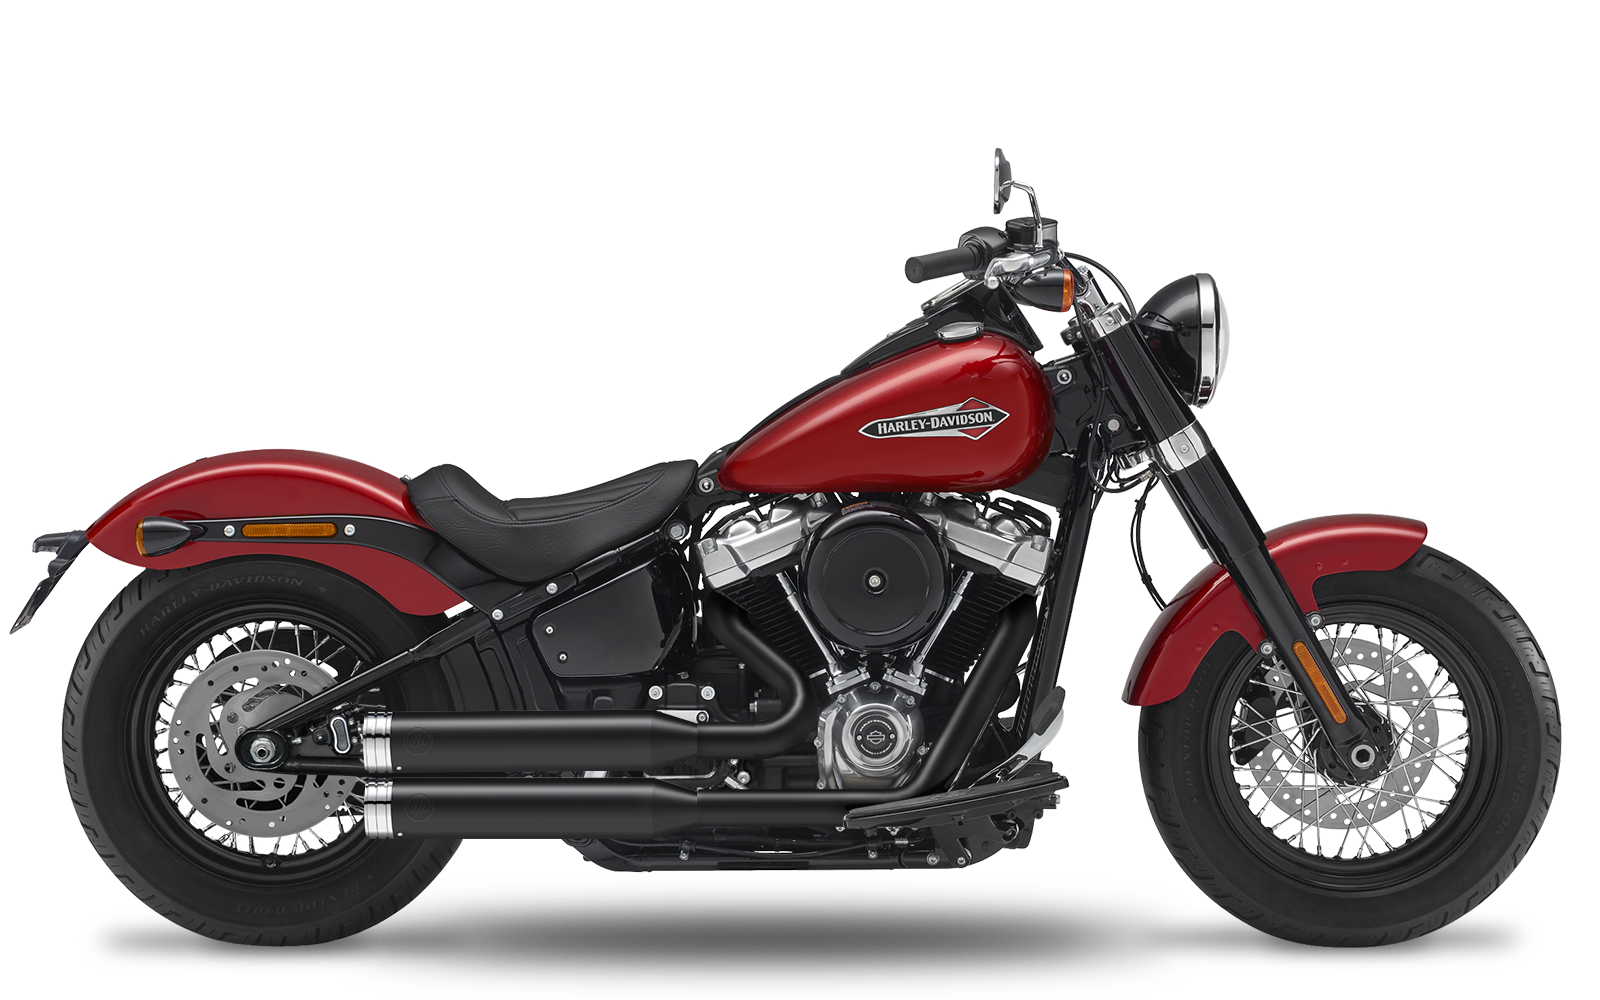 Softail - Slim - ME107 - 2018-2020 - Complete systems adjustable